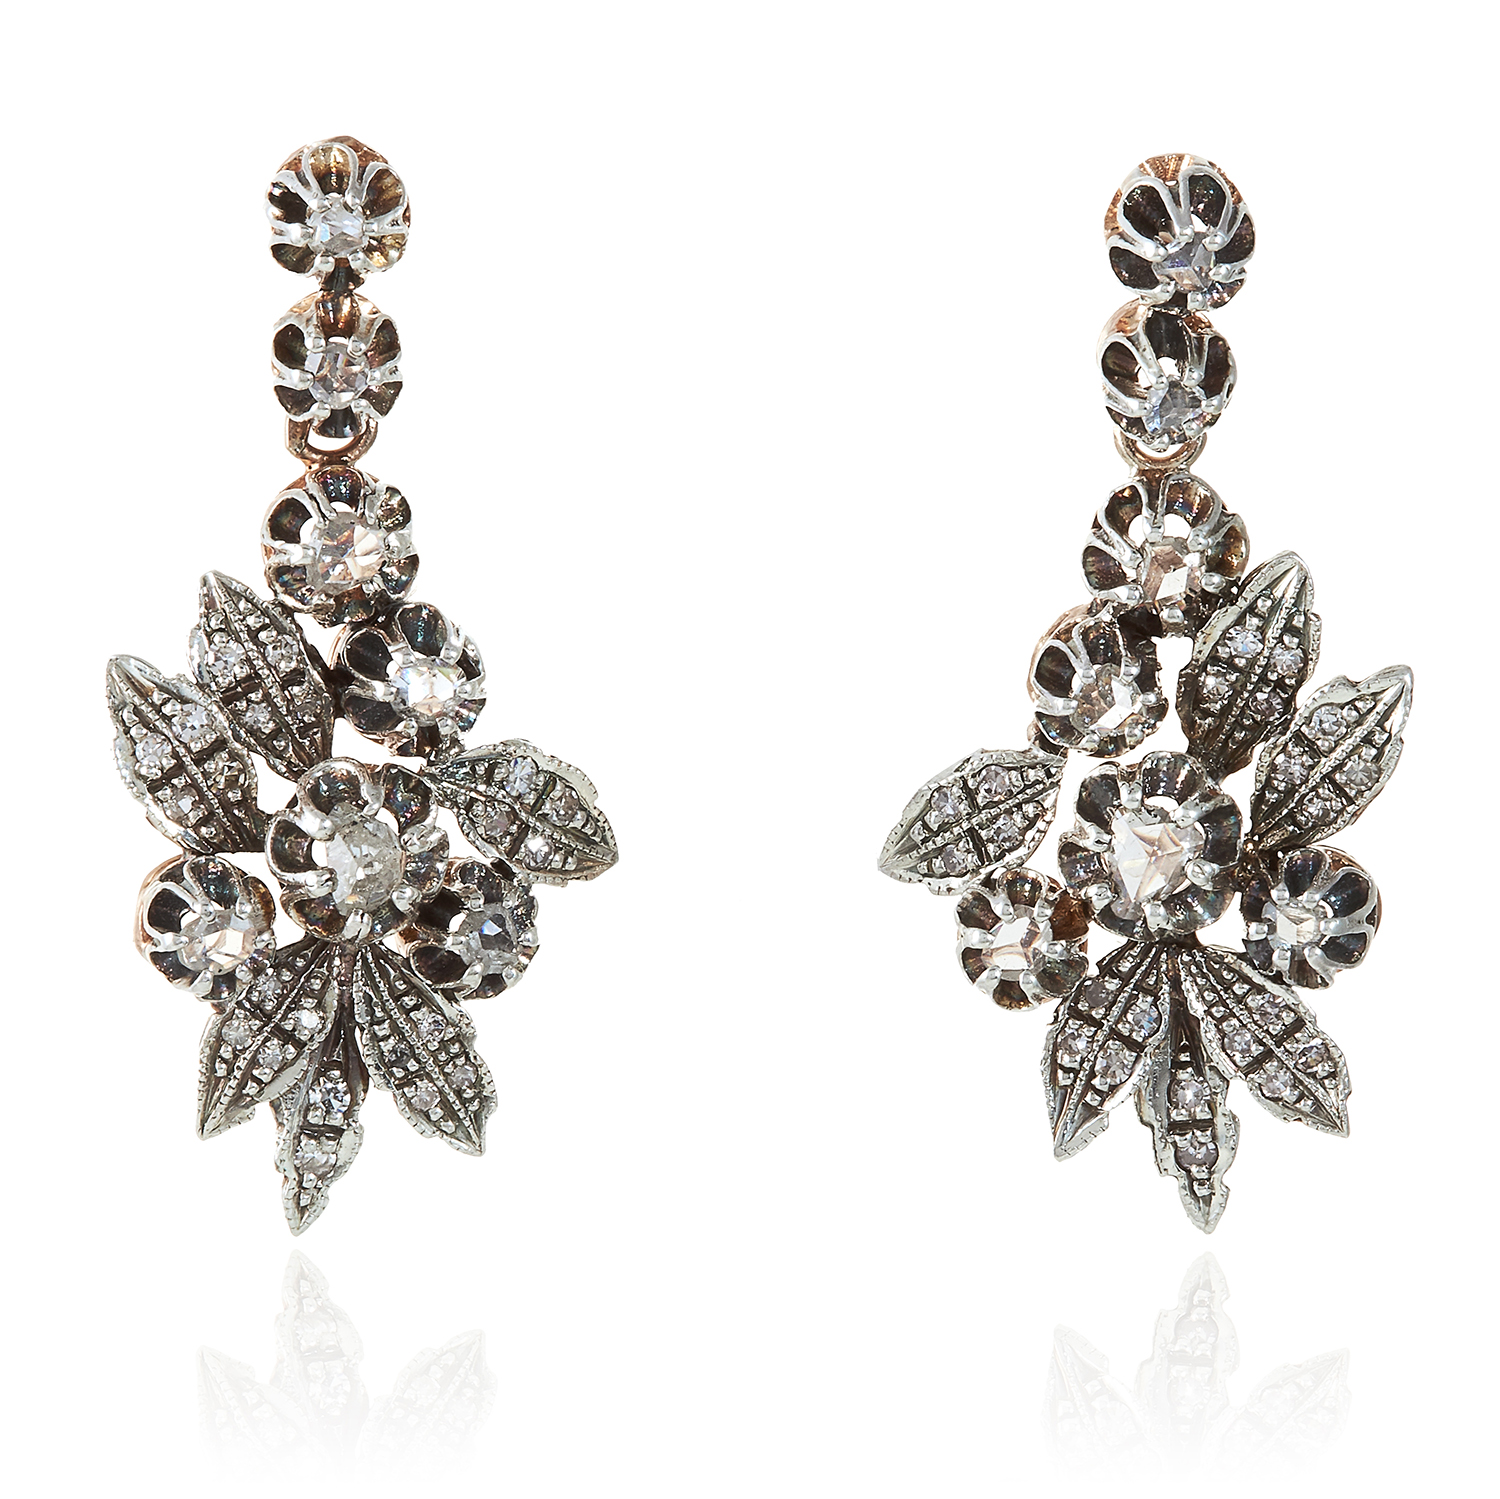 Los 355 - A PAIR OF ANTIQUE DIAMOND EARRINGS in high carat yellow gold and silver, designed as floral